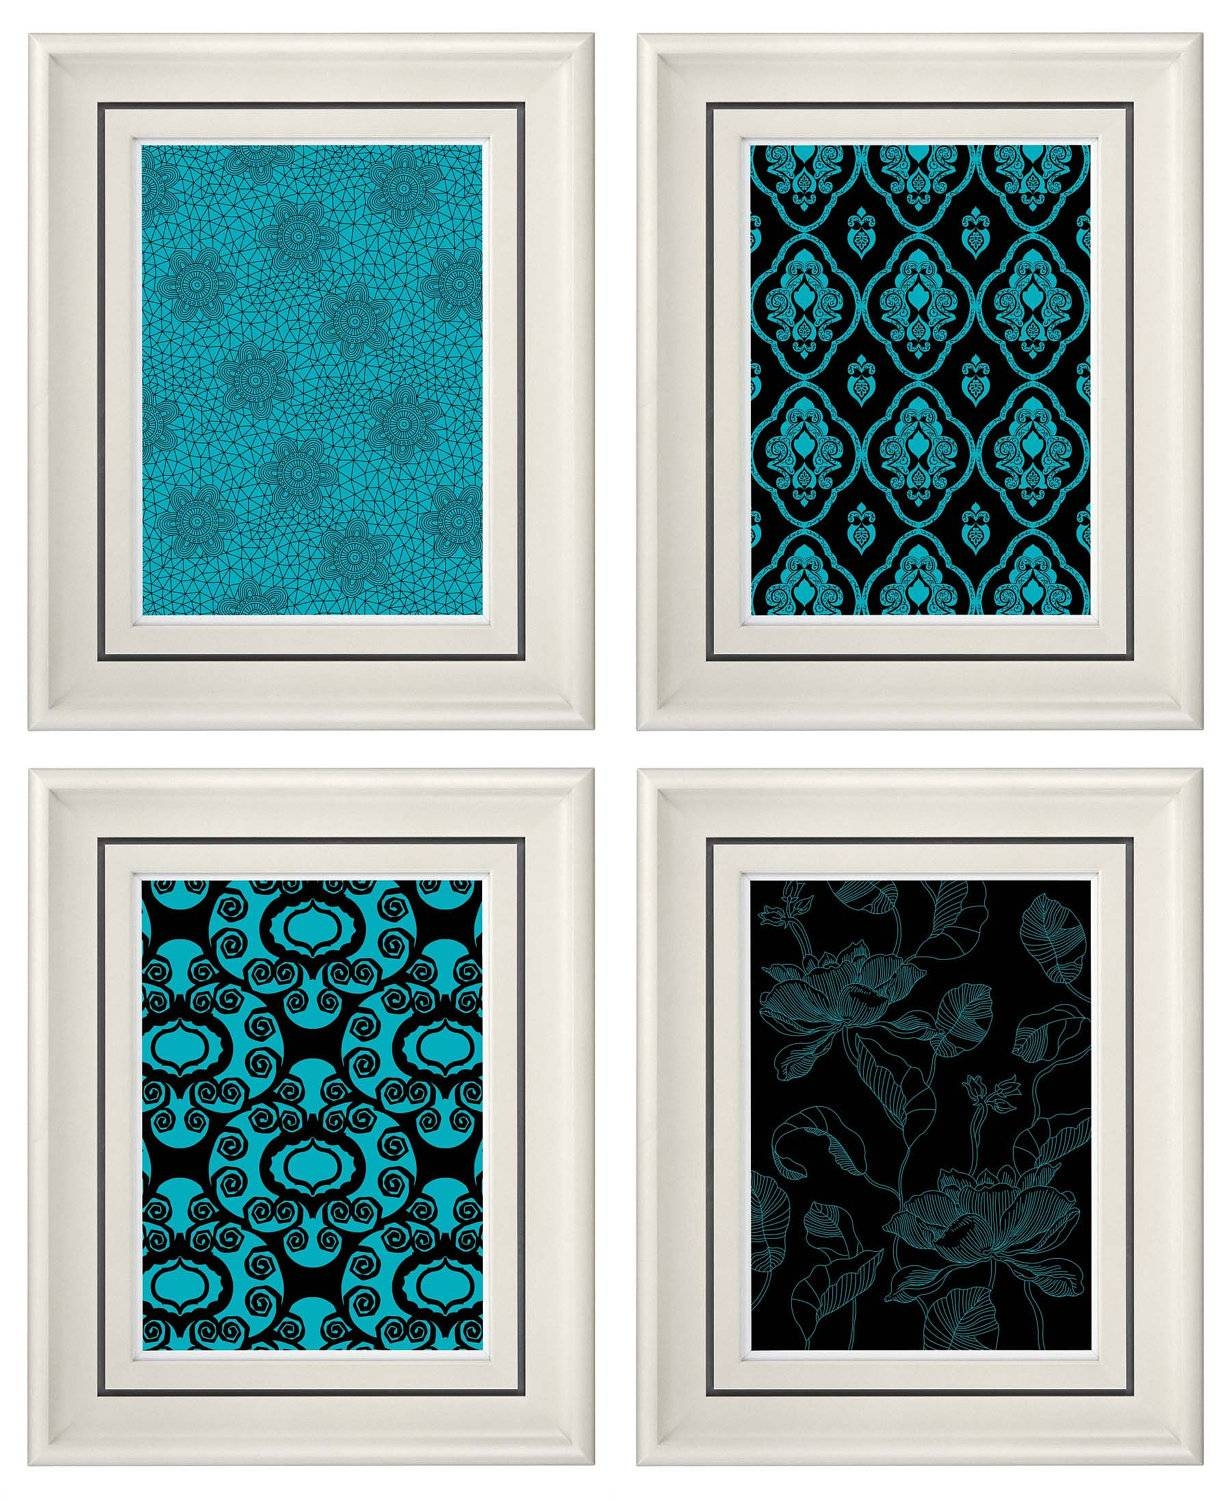 Wall Decor Turquoise – Home Design Pertaining To Best And Newest Turquoise And Black Wall Art (View 2 of 20)